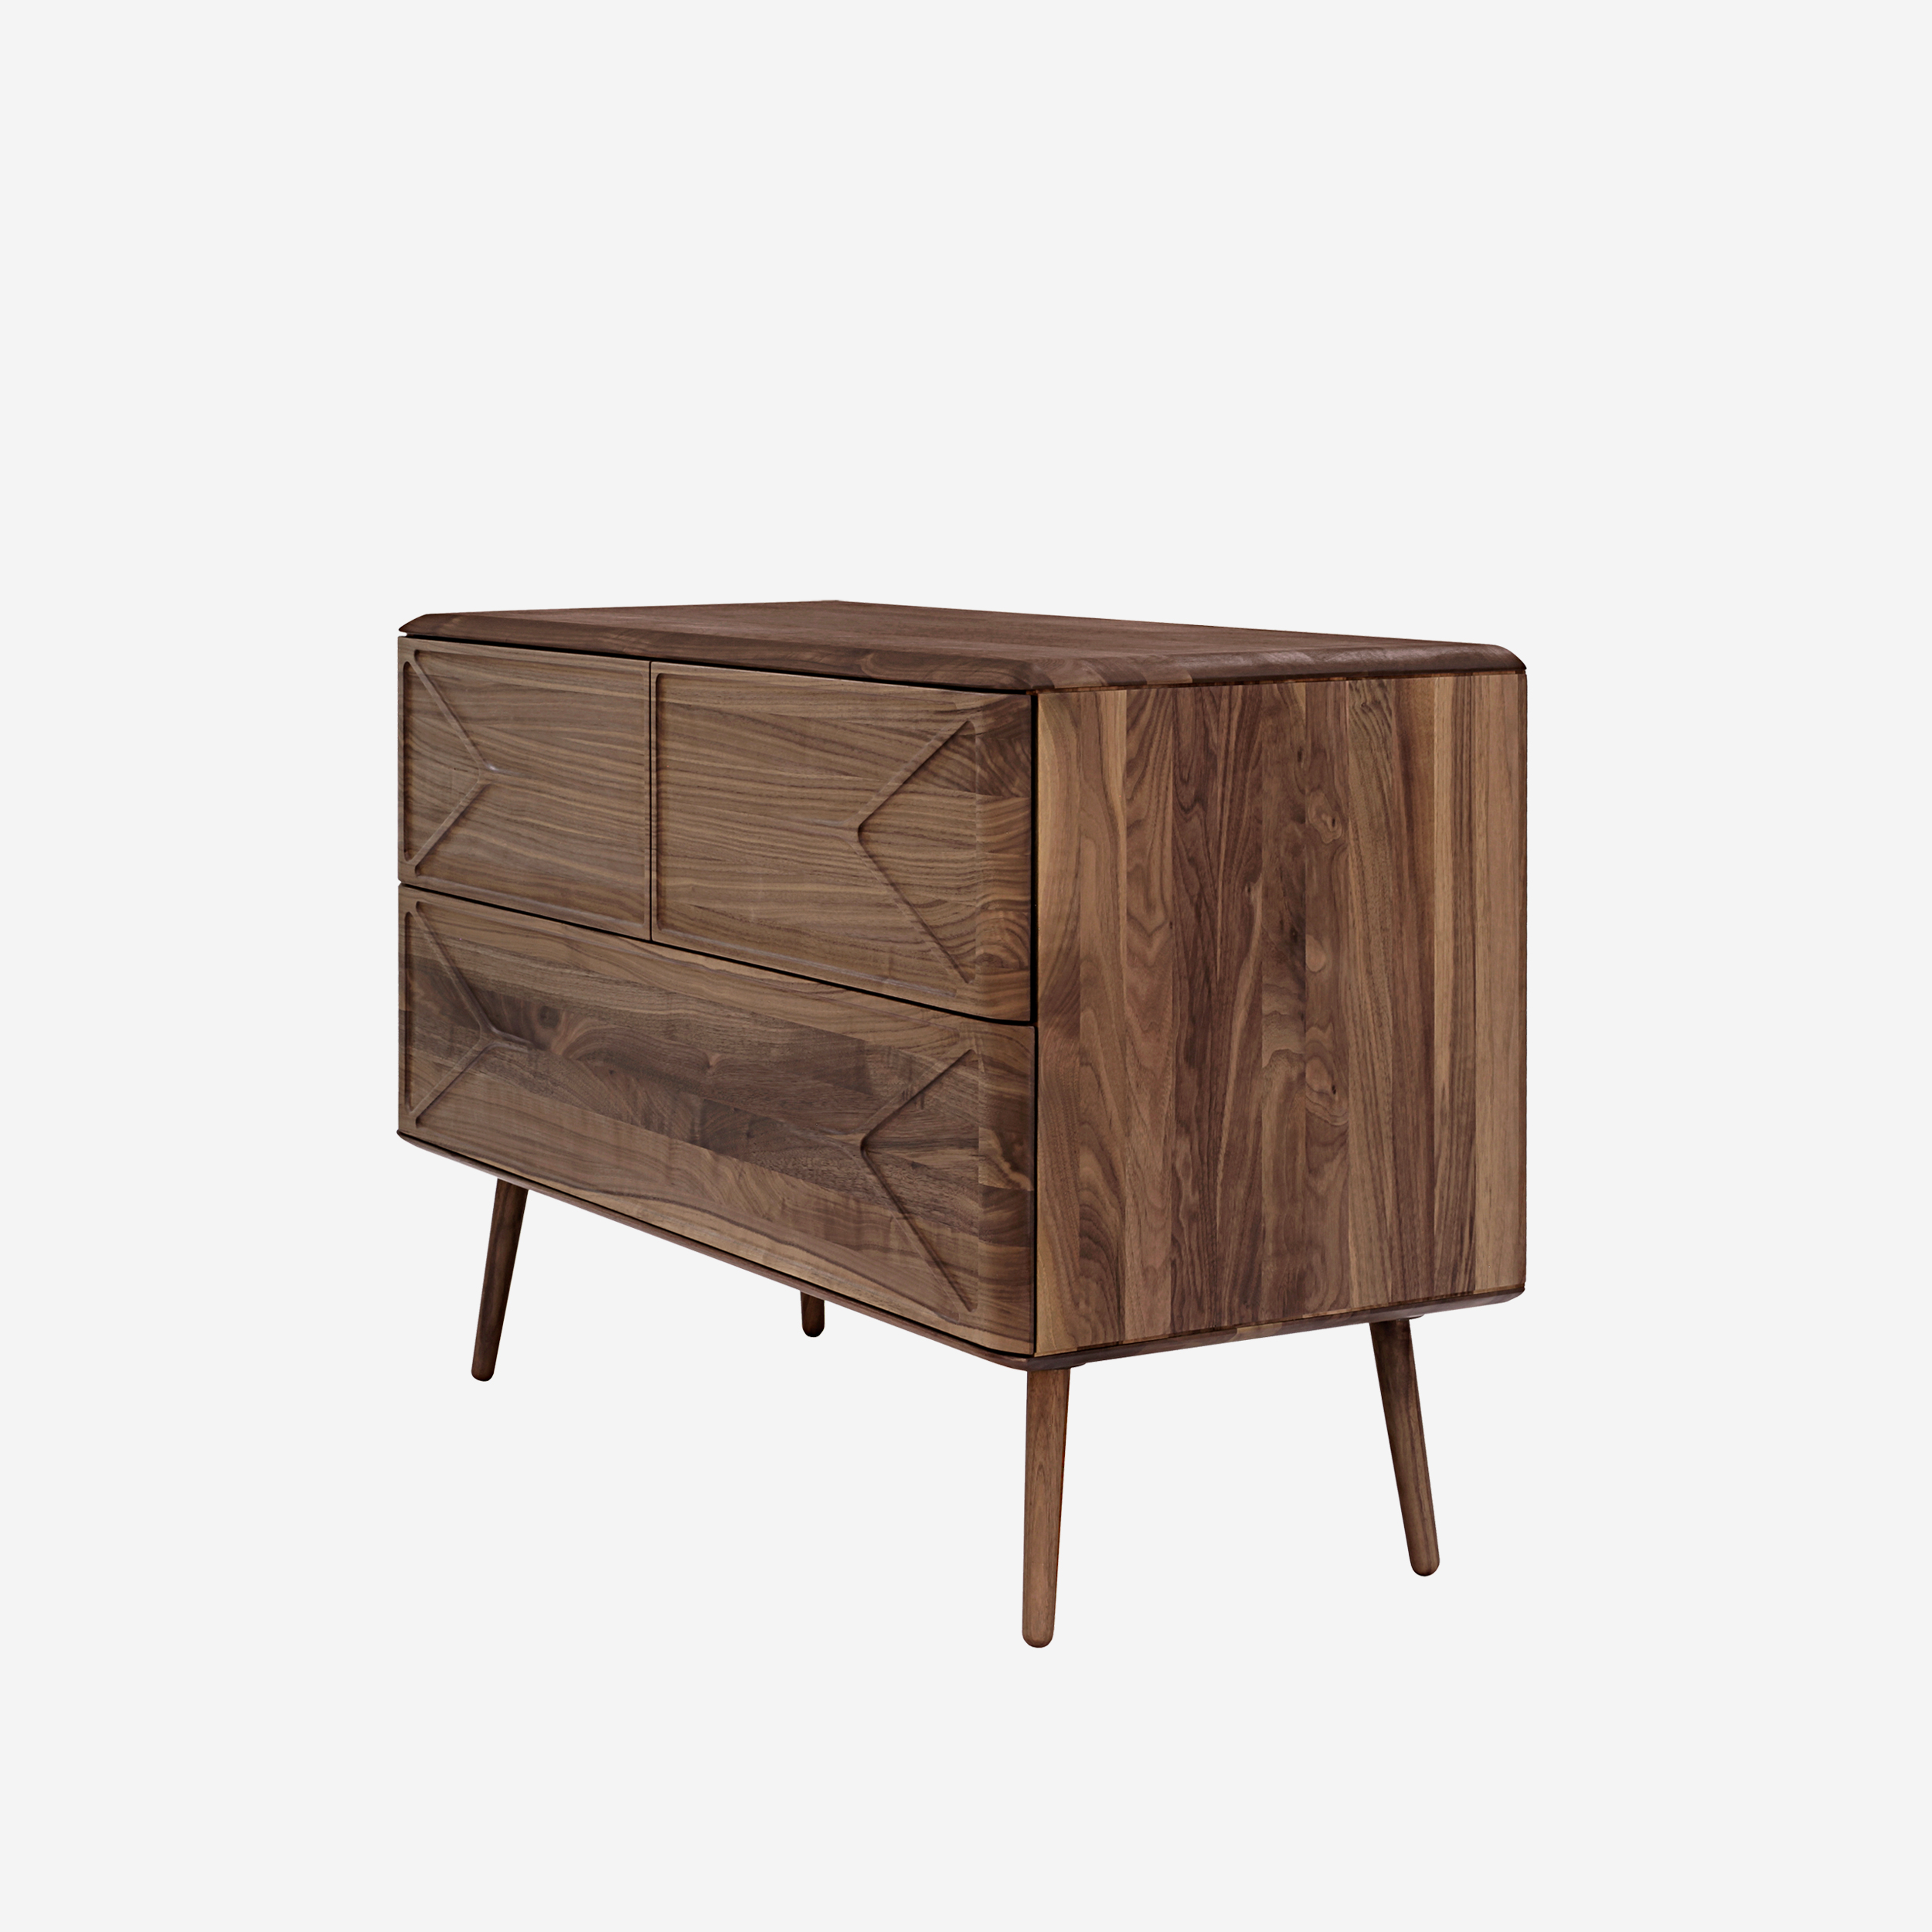 holzbeine affordable stuhl wei holzbeine with holzbeine amazing thea mit schirm with stehlampe. Black Bedroom Furniture Sets. Home Design Ideas